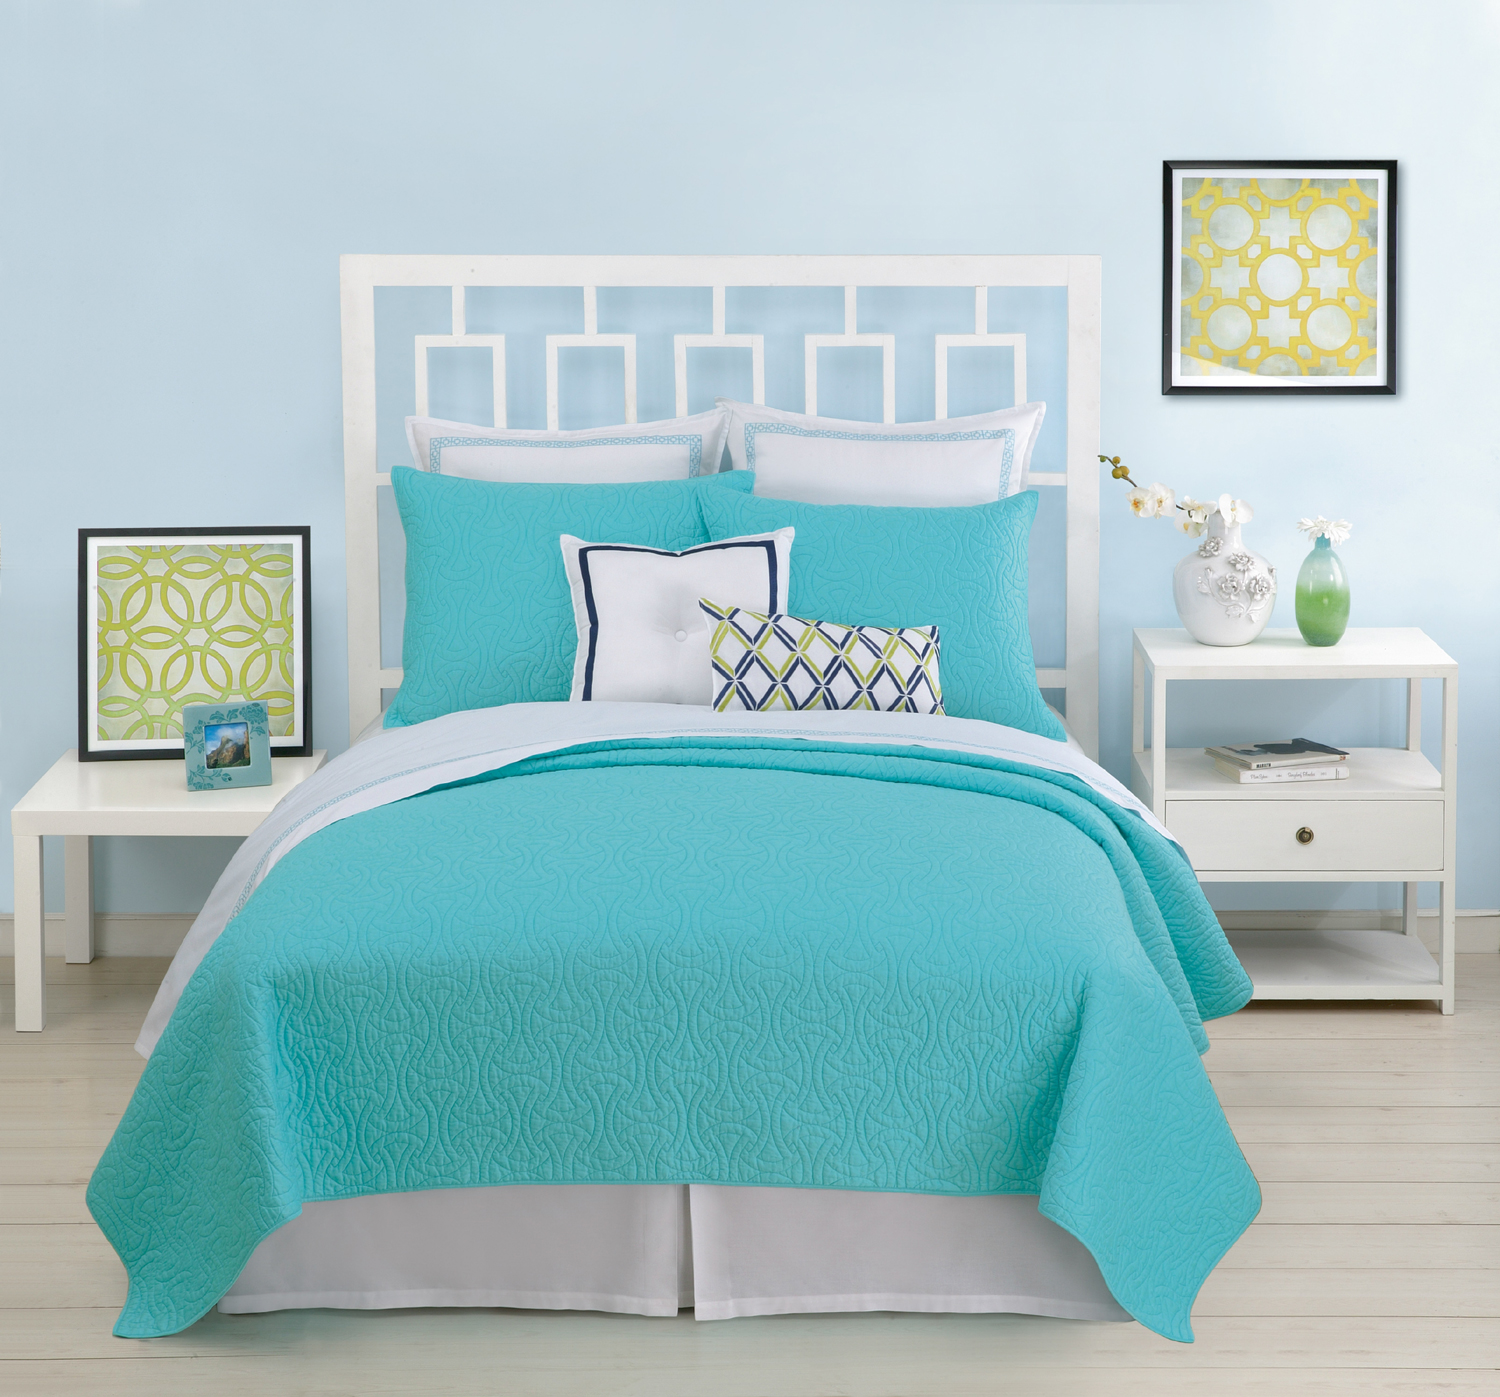 Santorini coverlet turquoise by trina turk bedding beddingsuperstore